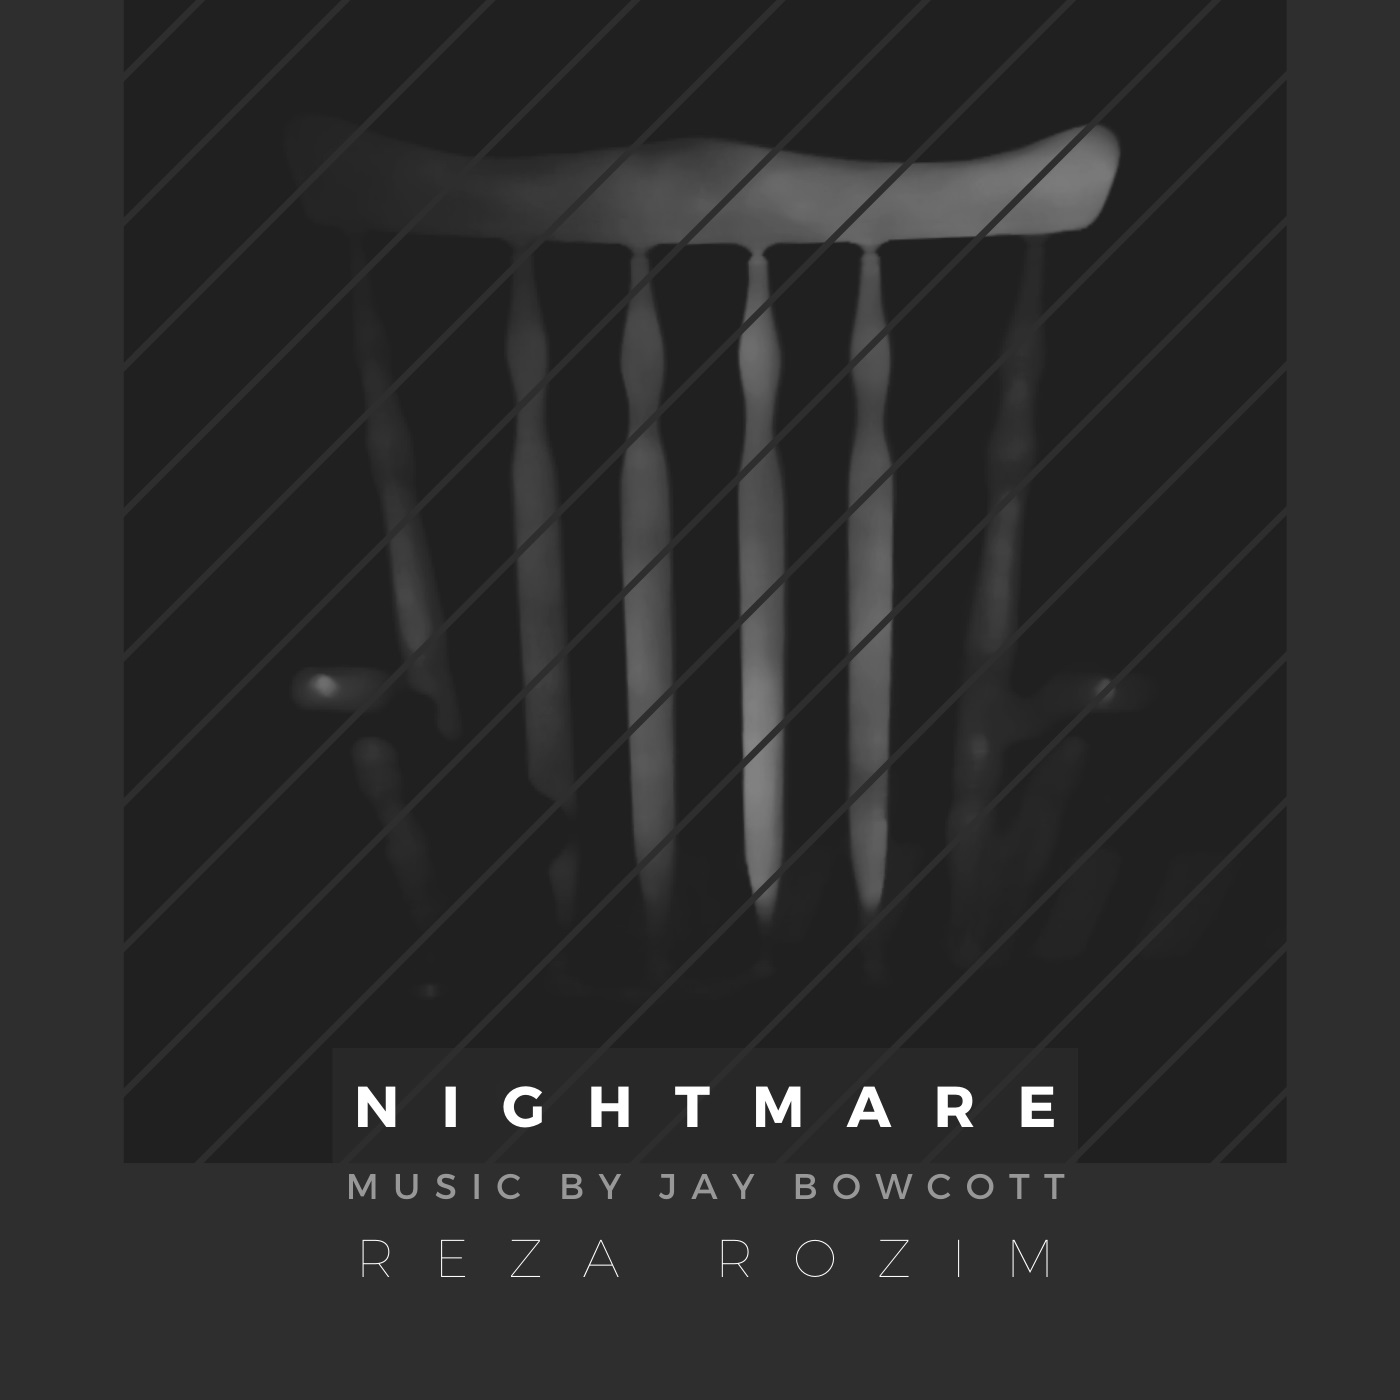 rEzA rOzim - Nightmare